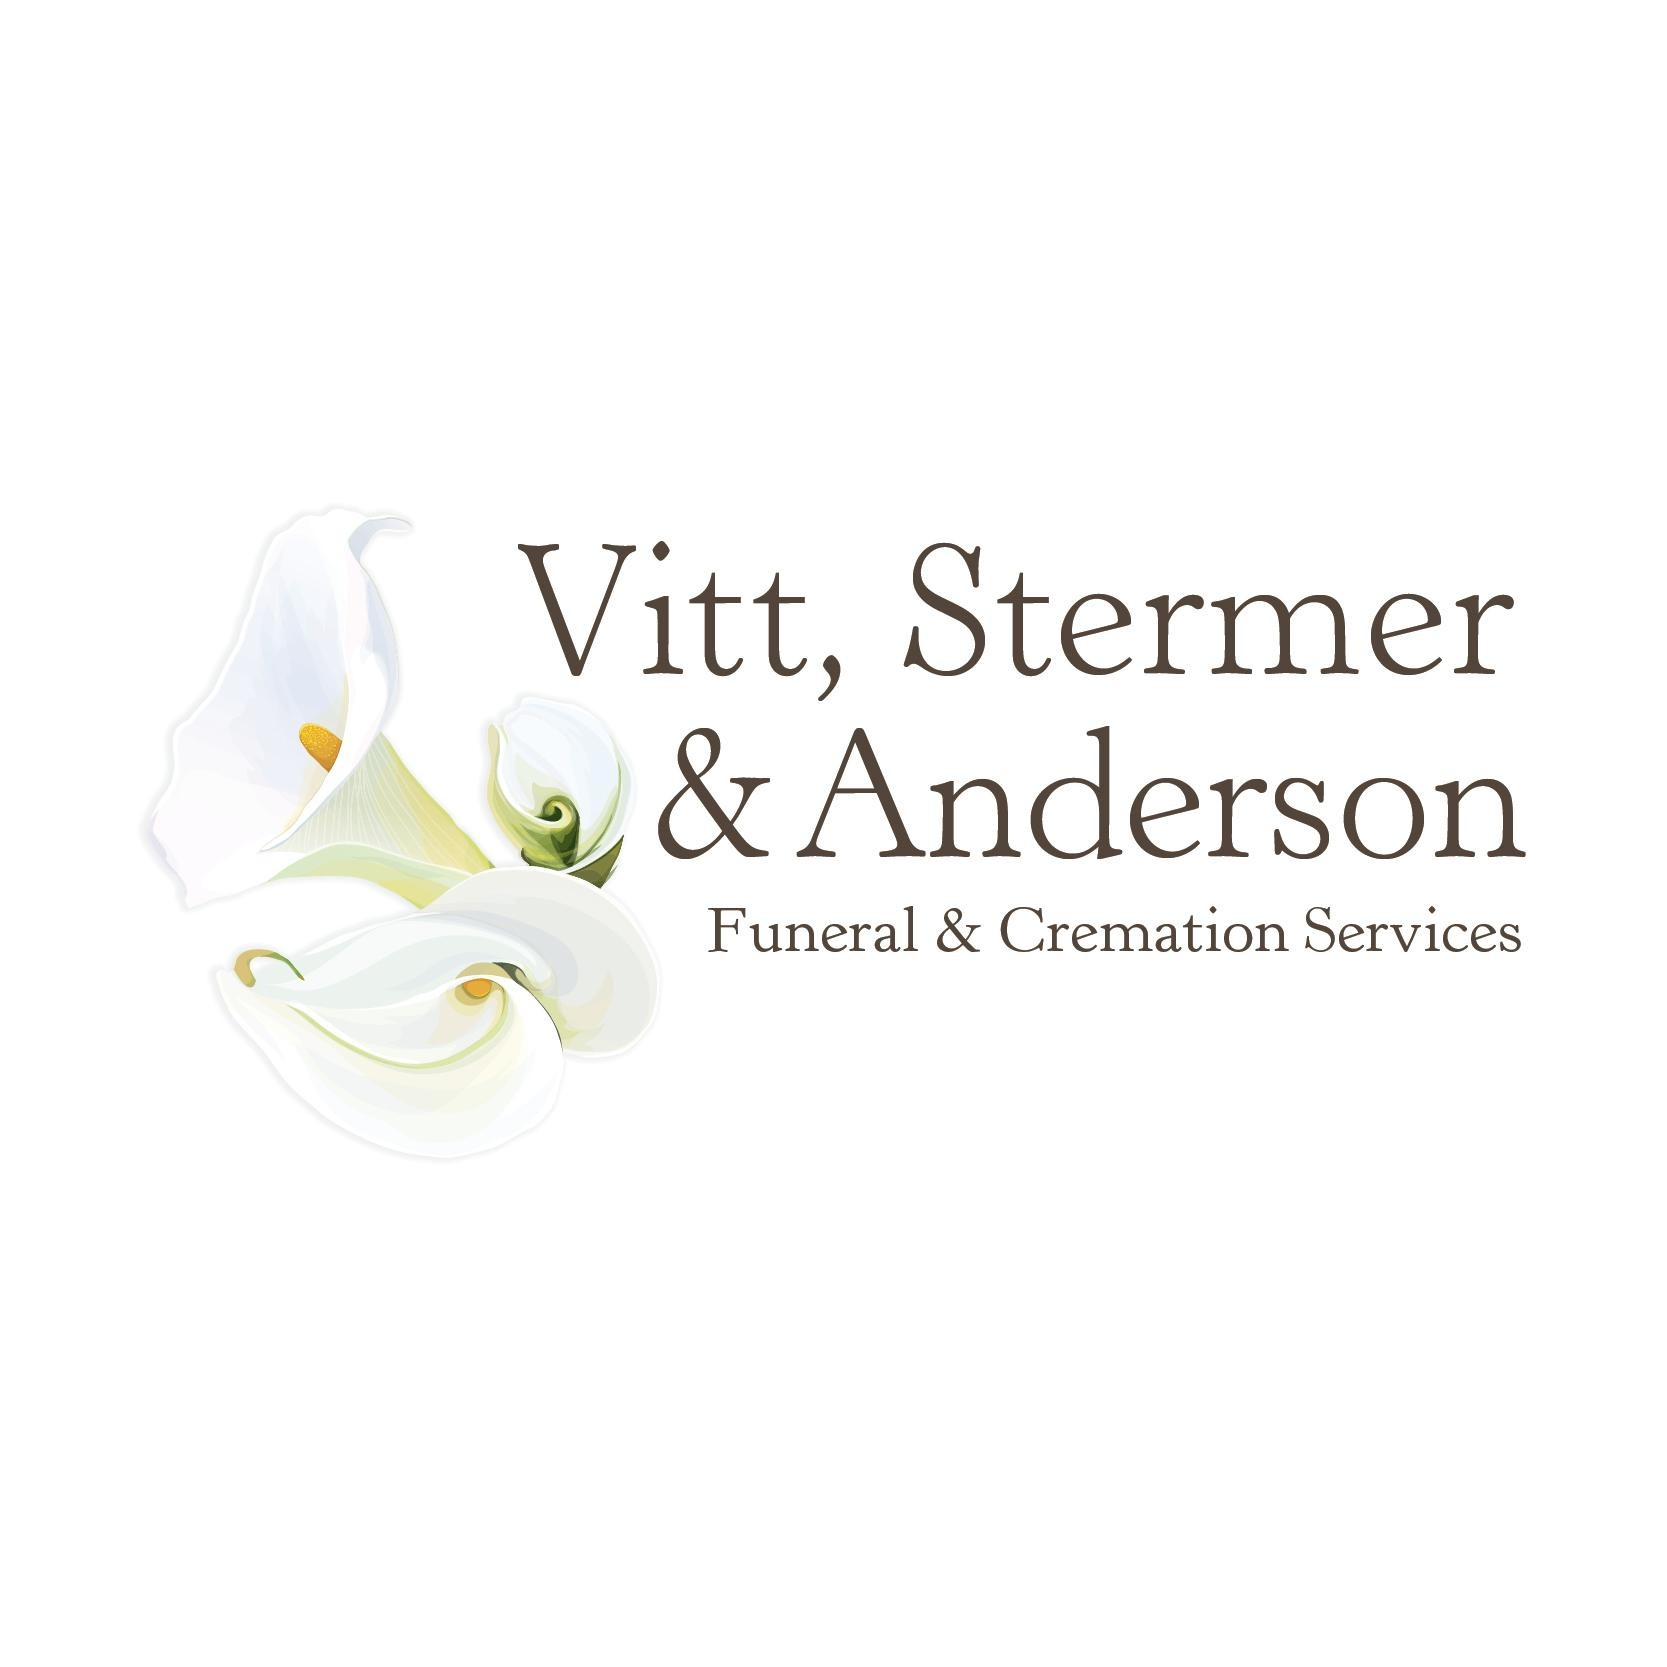 Vitt, Stermer & Anderson Funeral & Cremation Services